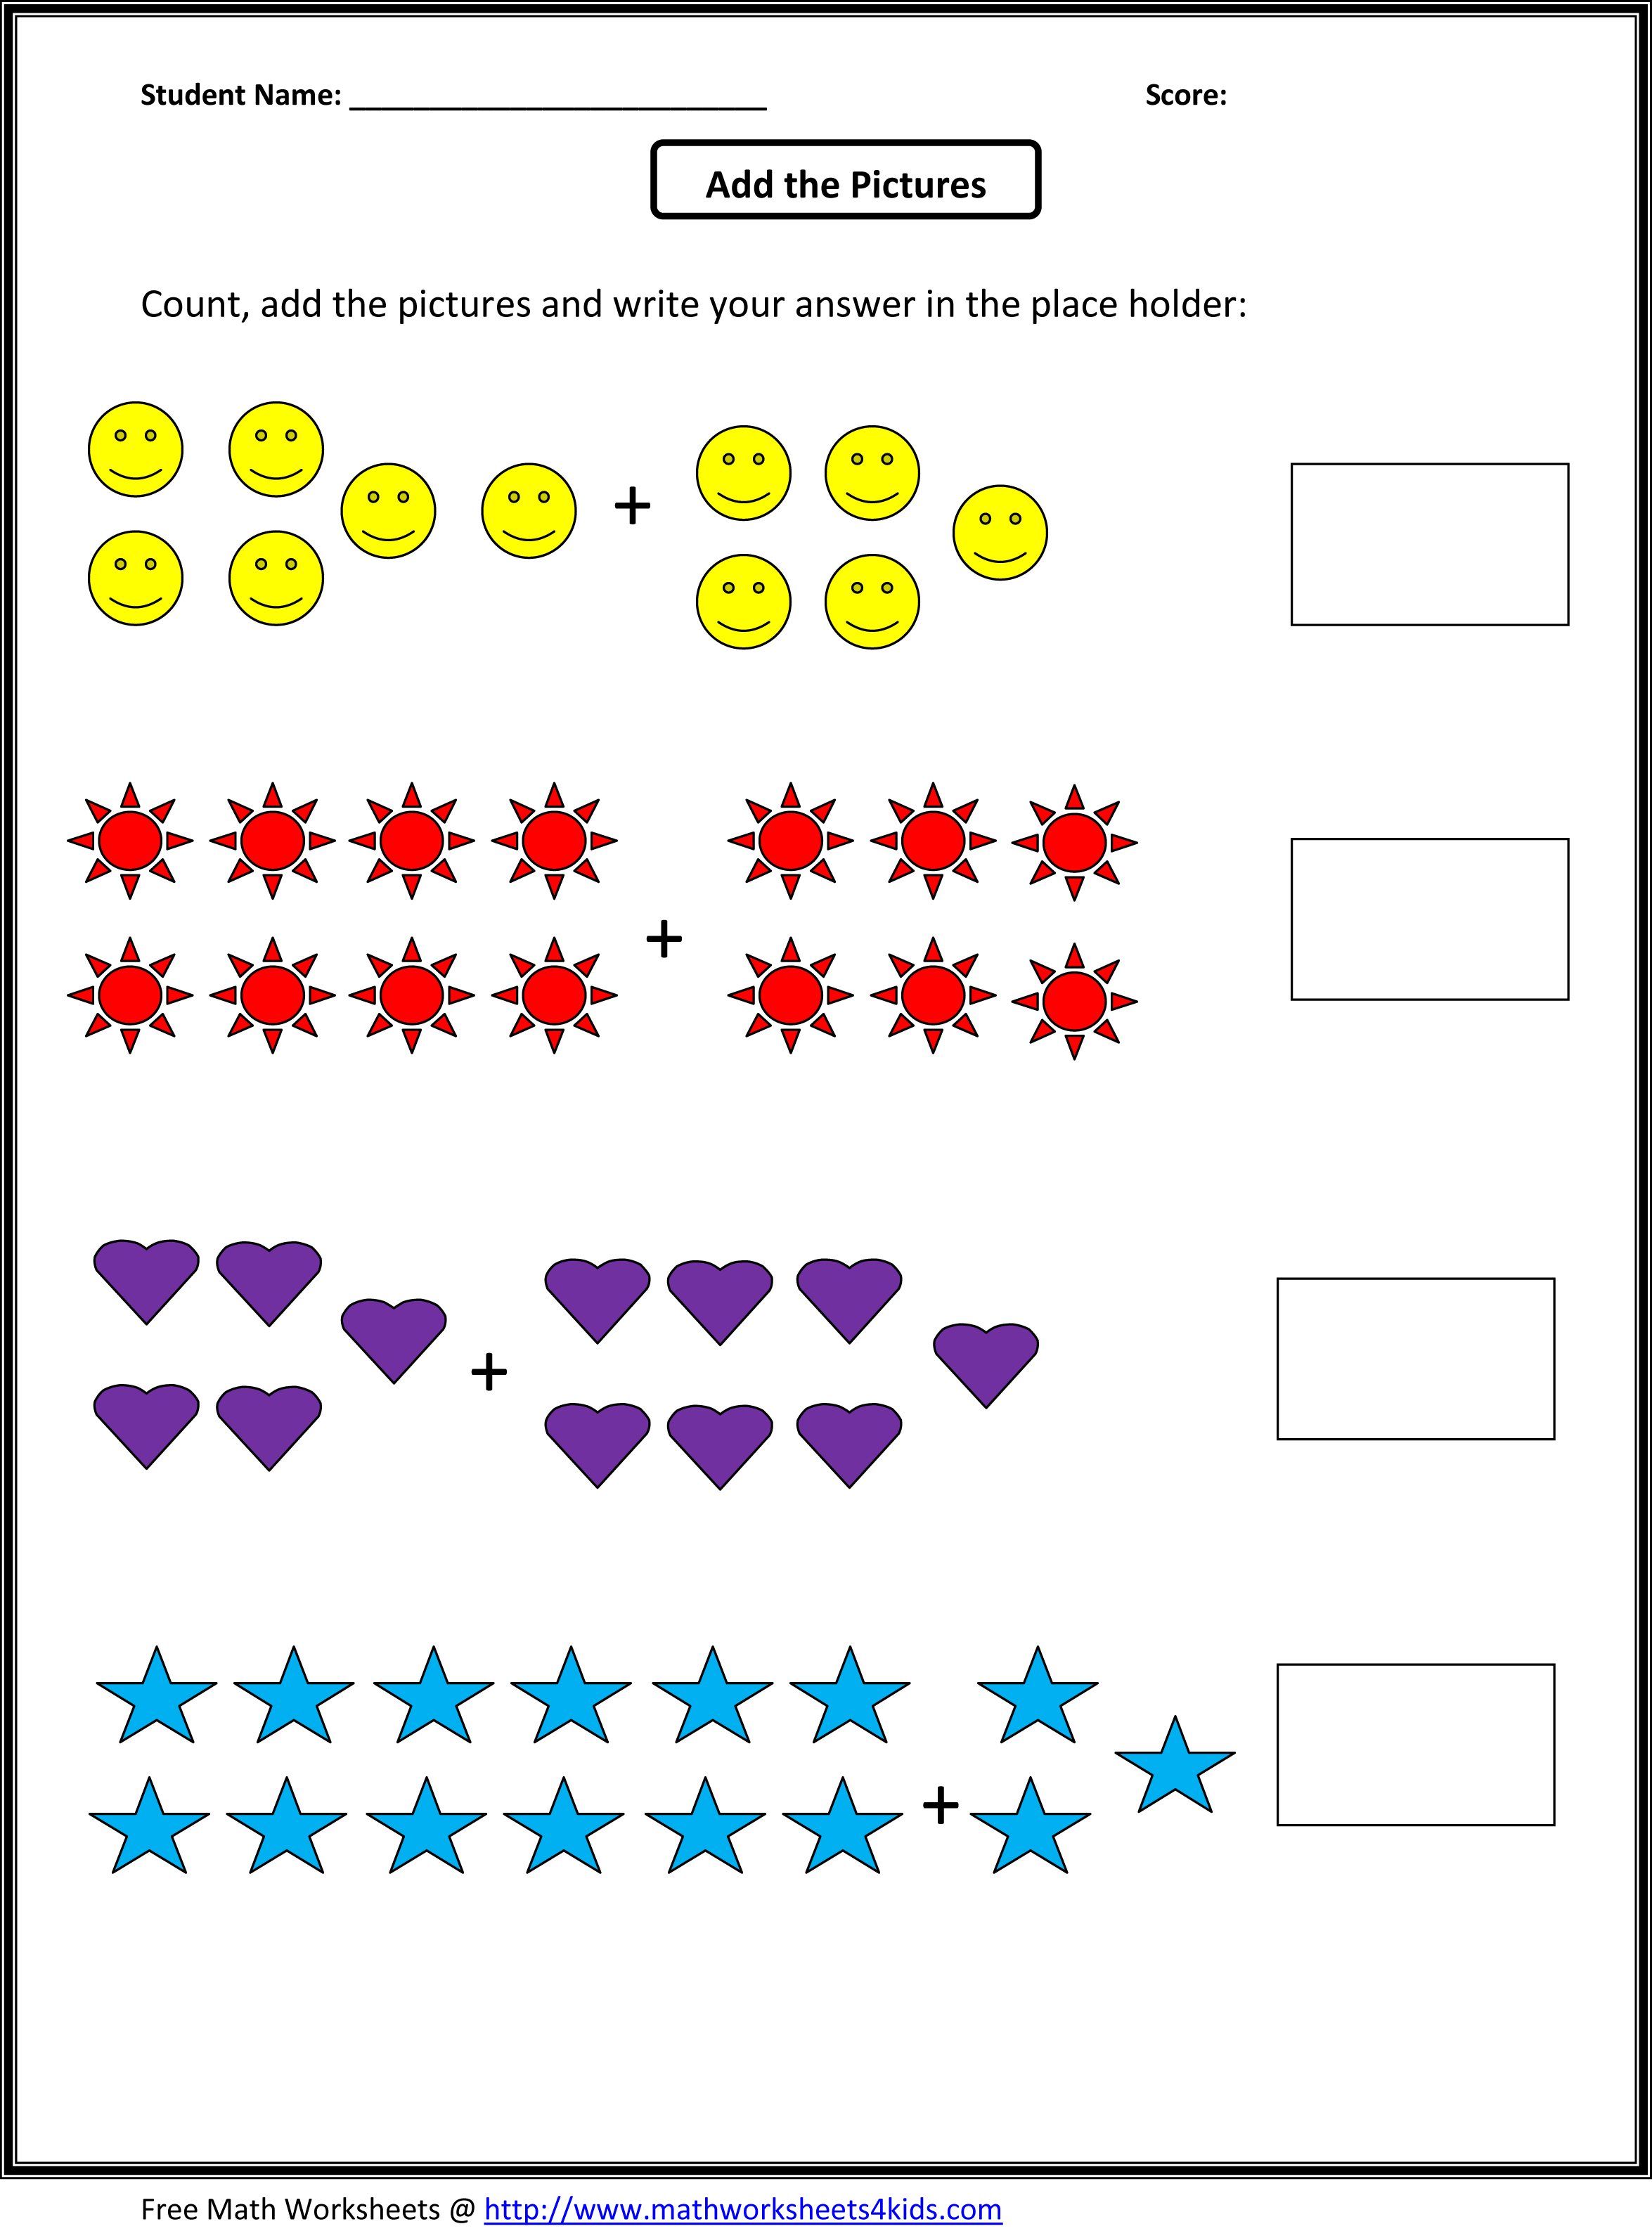 Weirdmailus  Winsome Grade  Maths Worksheet  Reocurent With Outstanding Math Worksheets For St Grade Free  Reocurent With Cool Setting Of A Story Worksheet Also Sentence Structure Worksheets Nd Grade In Addition Math Puzzle Worksheets For Middle School And Greek Language Worksheets As Well As Miss Nelson Has A Field Day Worksheets Additionally Role Model Worksheets From Reocurentcom With Weirdmailus  Outstanding Grade  Maths Worksheet  Reocurent With Cool Math Worksheets For St Grade Free  Reocurent And Winsome Setting Of A Story Worksheet Also Sentence Structure Worksheets Nd Grade In Addition Math Puzzle Worksheets For Middle School From Reocurentcom